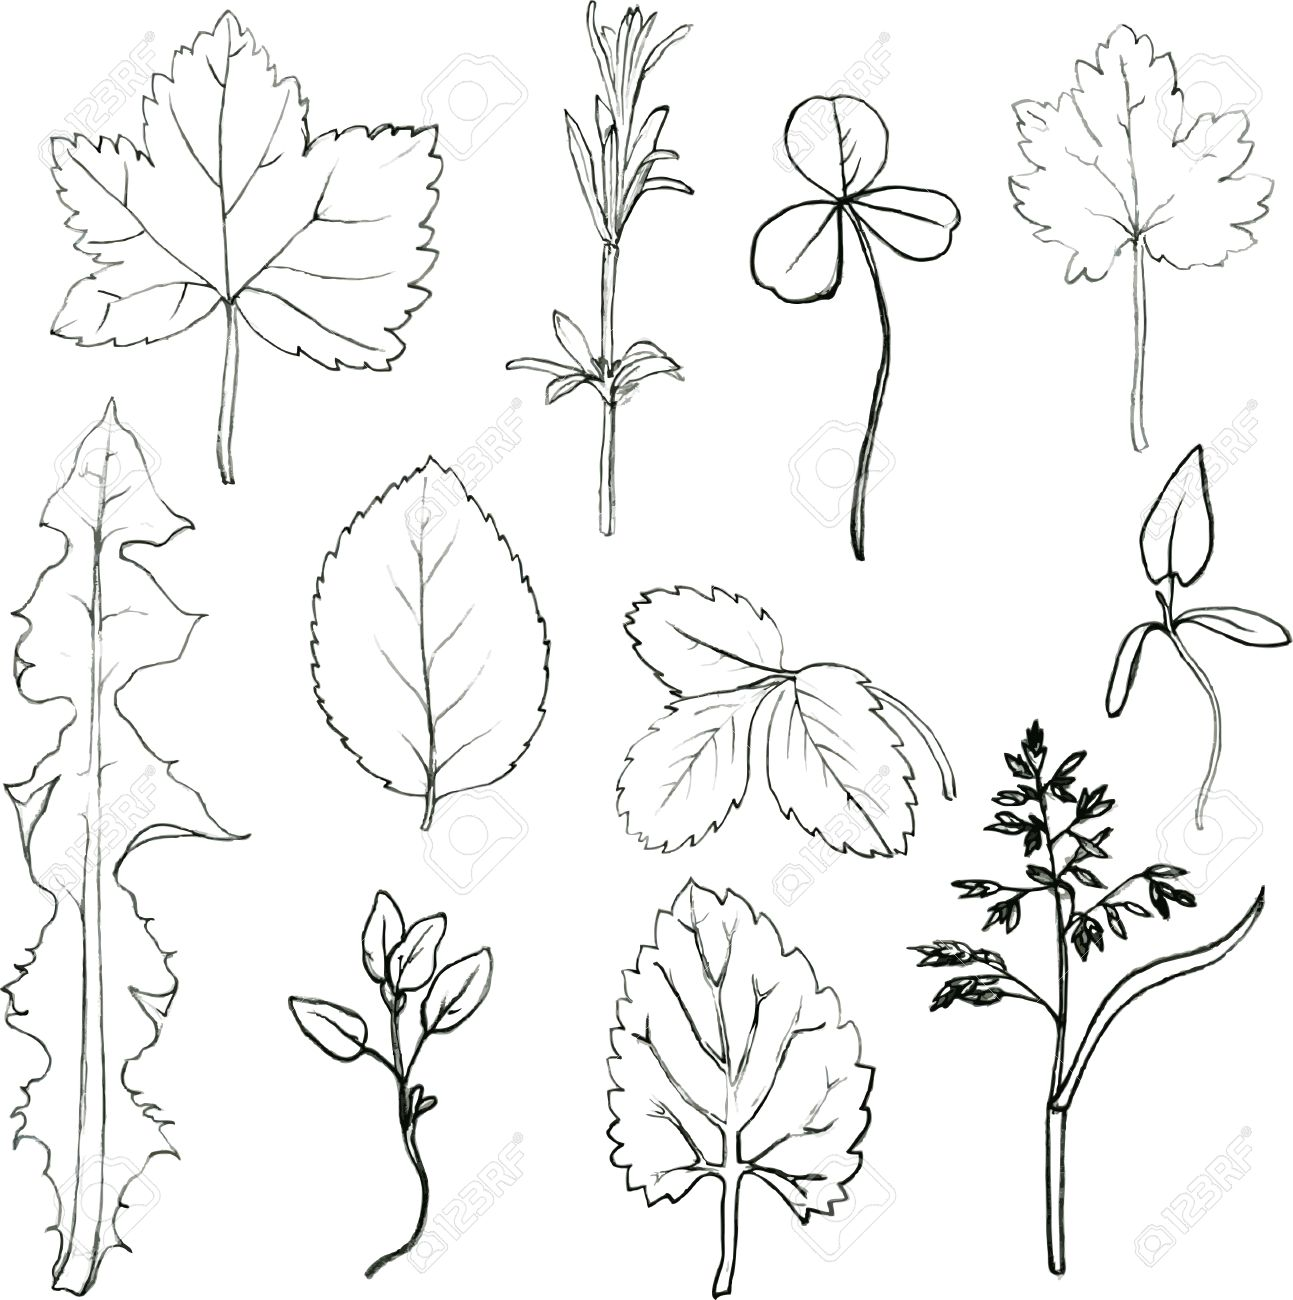 1293x1300 Set Of Pencil Drawing Herbs And Leaves, Painted Graphite Pencil